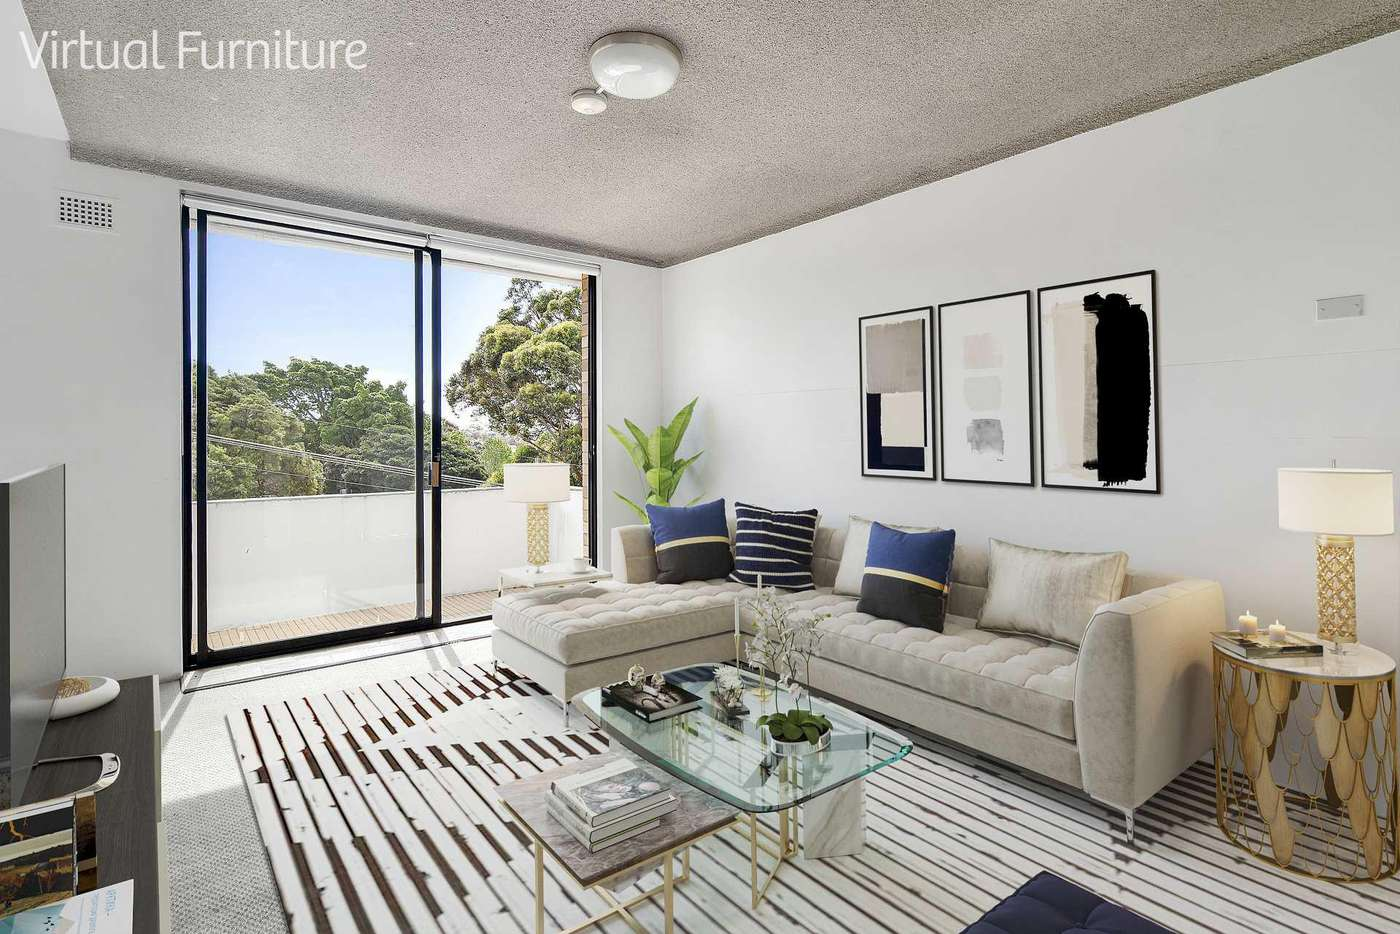 Main view of Homely studio listing, 22/2 Sutherland Street, Cremorne NSW 2090